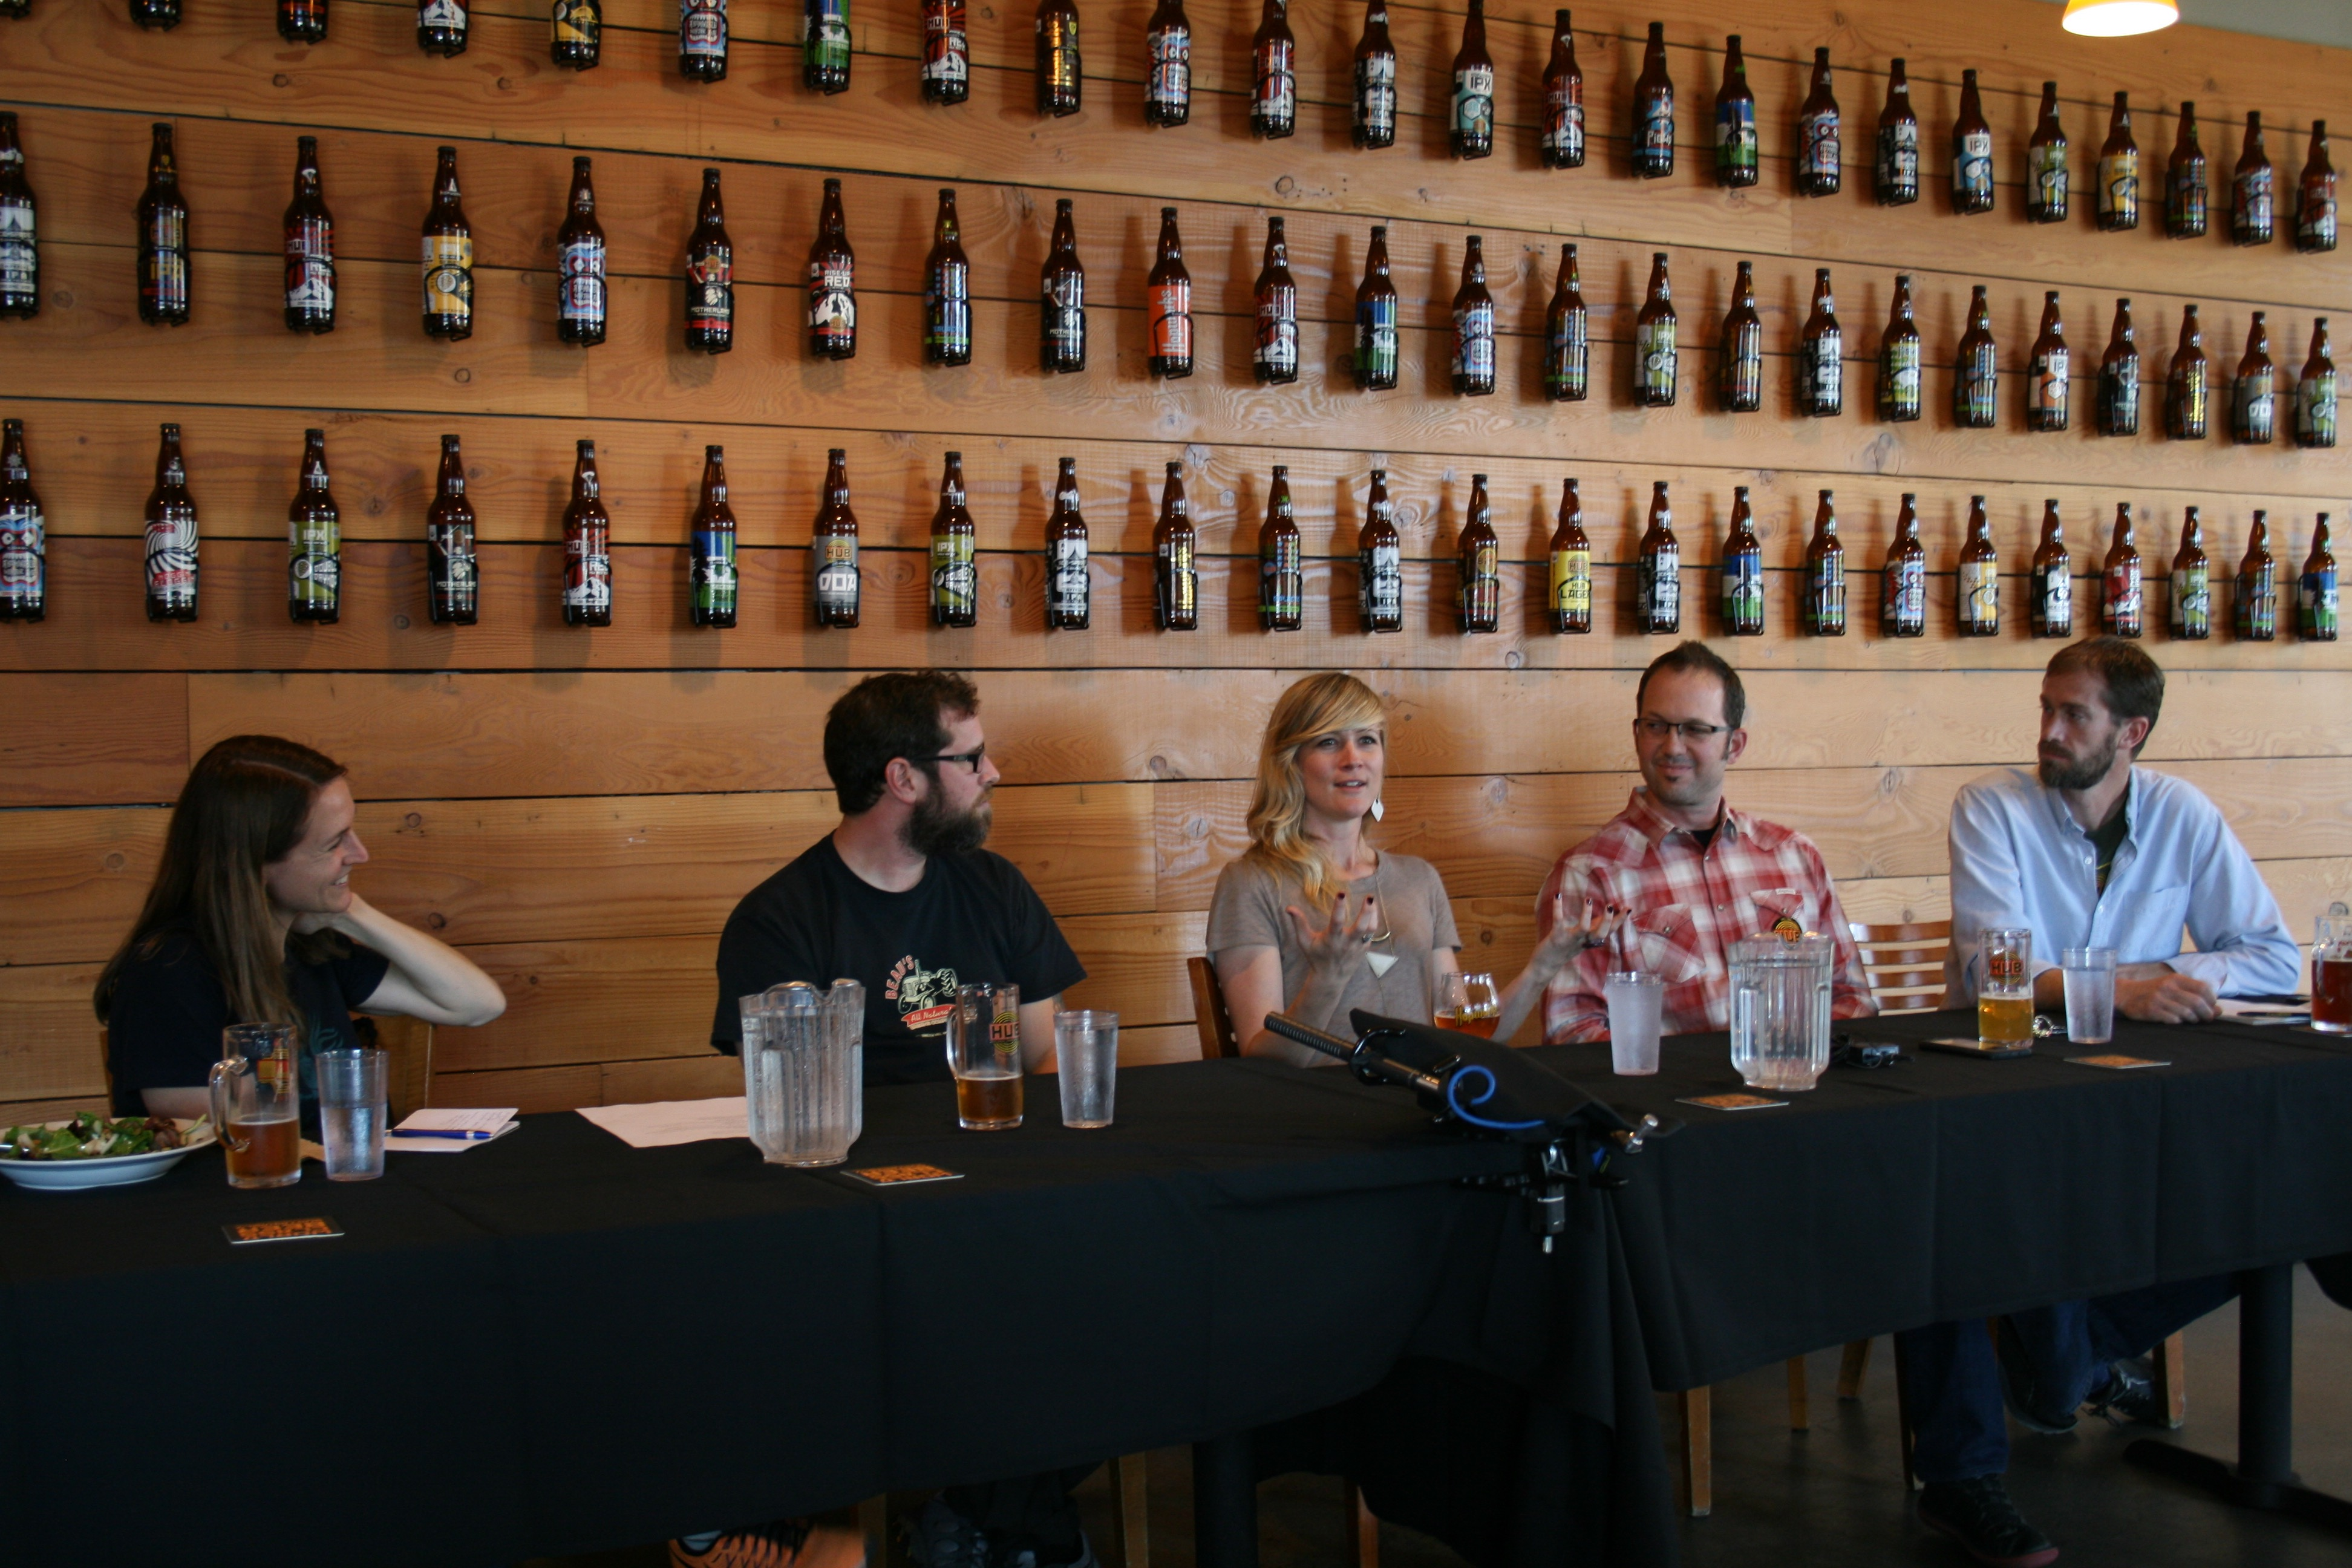 B Corp Brewery Panel at Hopworks Urban Brewery. From left, Kris Spaulding of Brewery Vivant, Steve Beauchesne of Beau's All Natural Brewing, Katie Wallace of New Belgium, and both Christian Ettinger and Nate Young of Hopworks Urban Brewery. (photo by D.J. Paul)